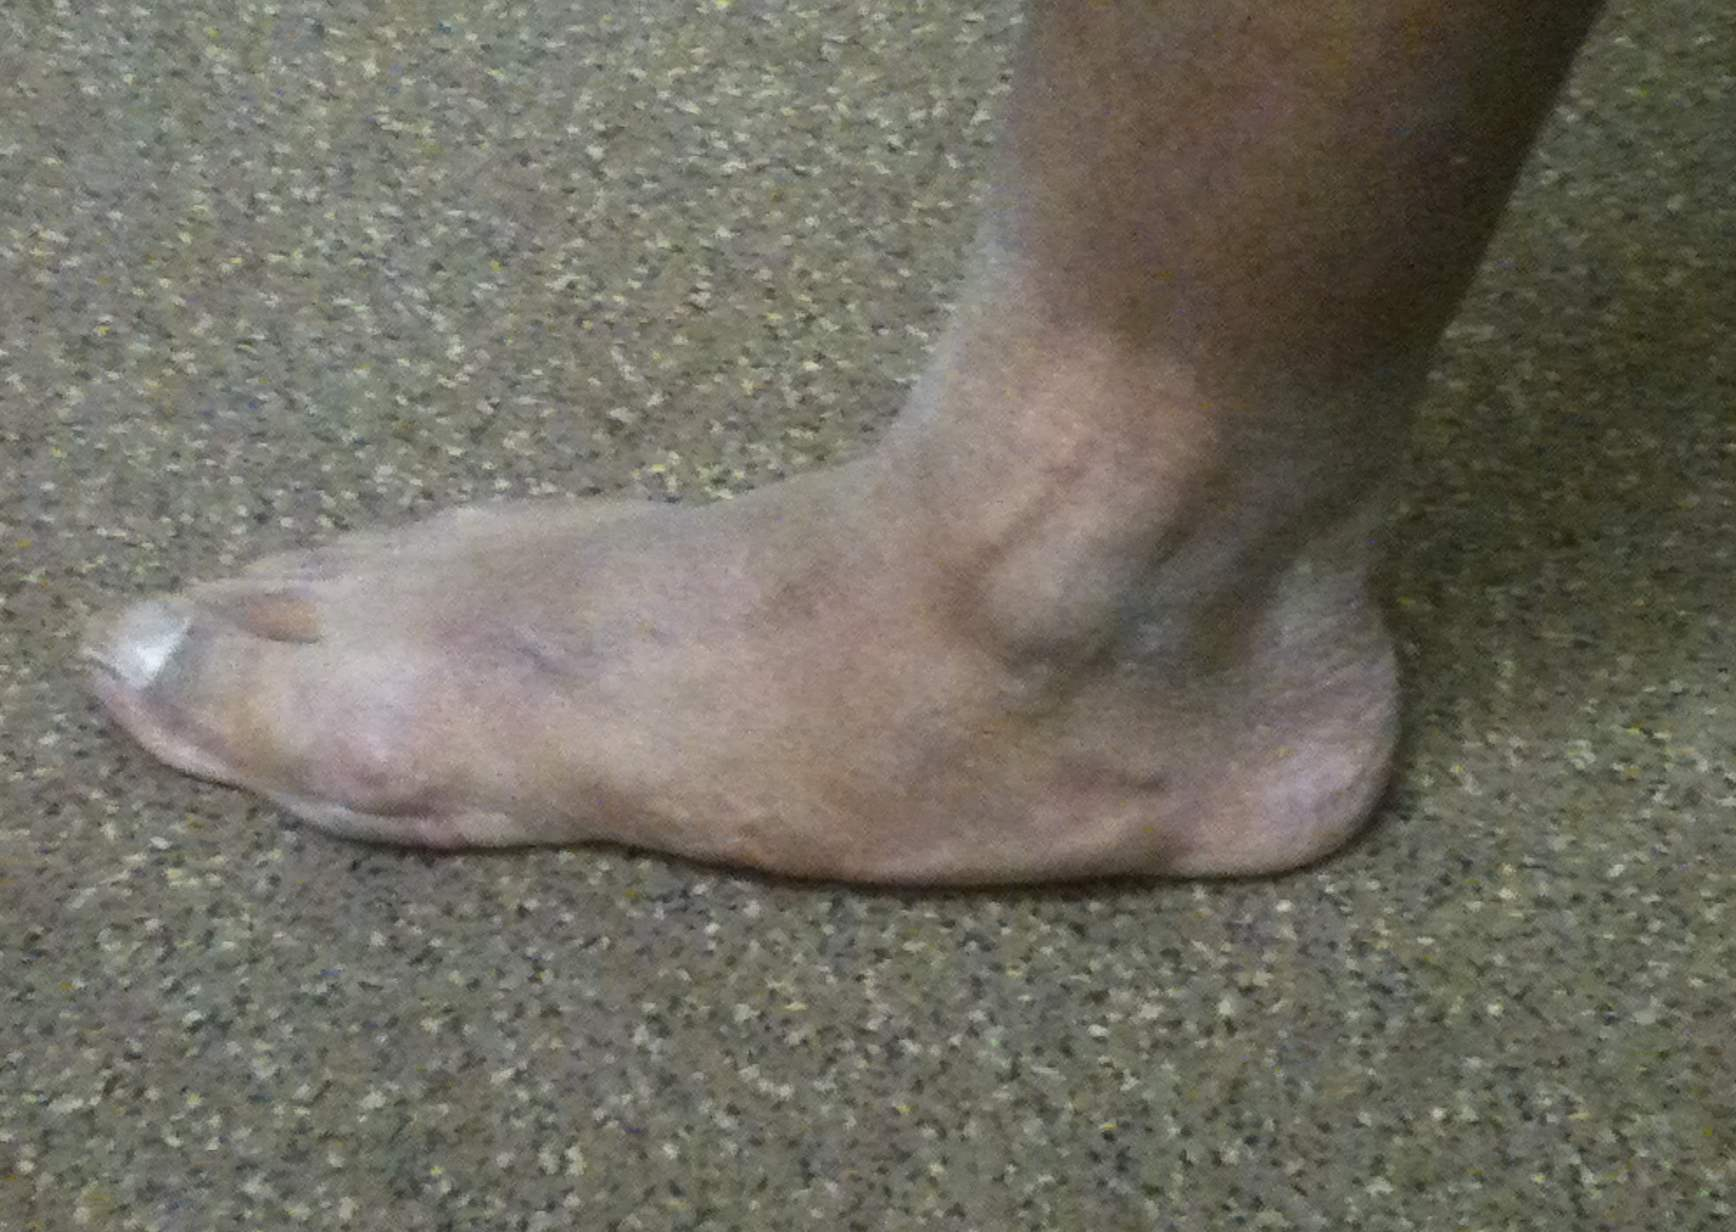 Adult Flatfoot Clinical